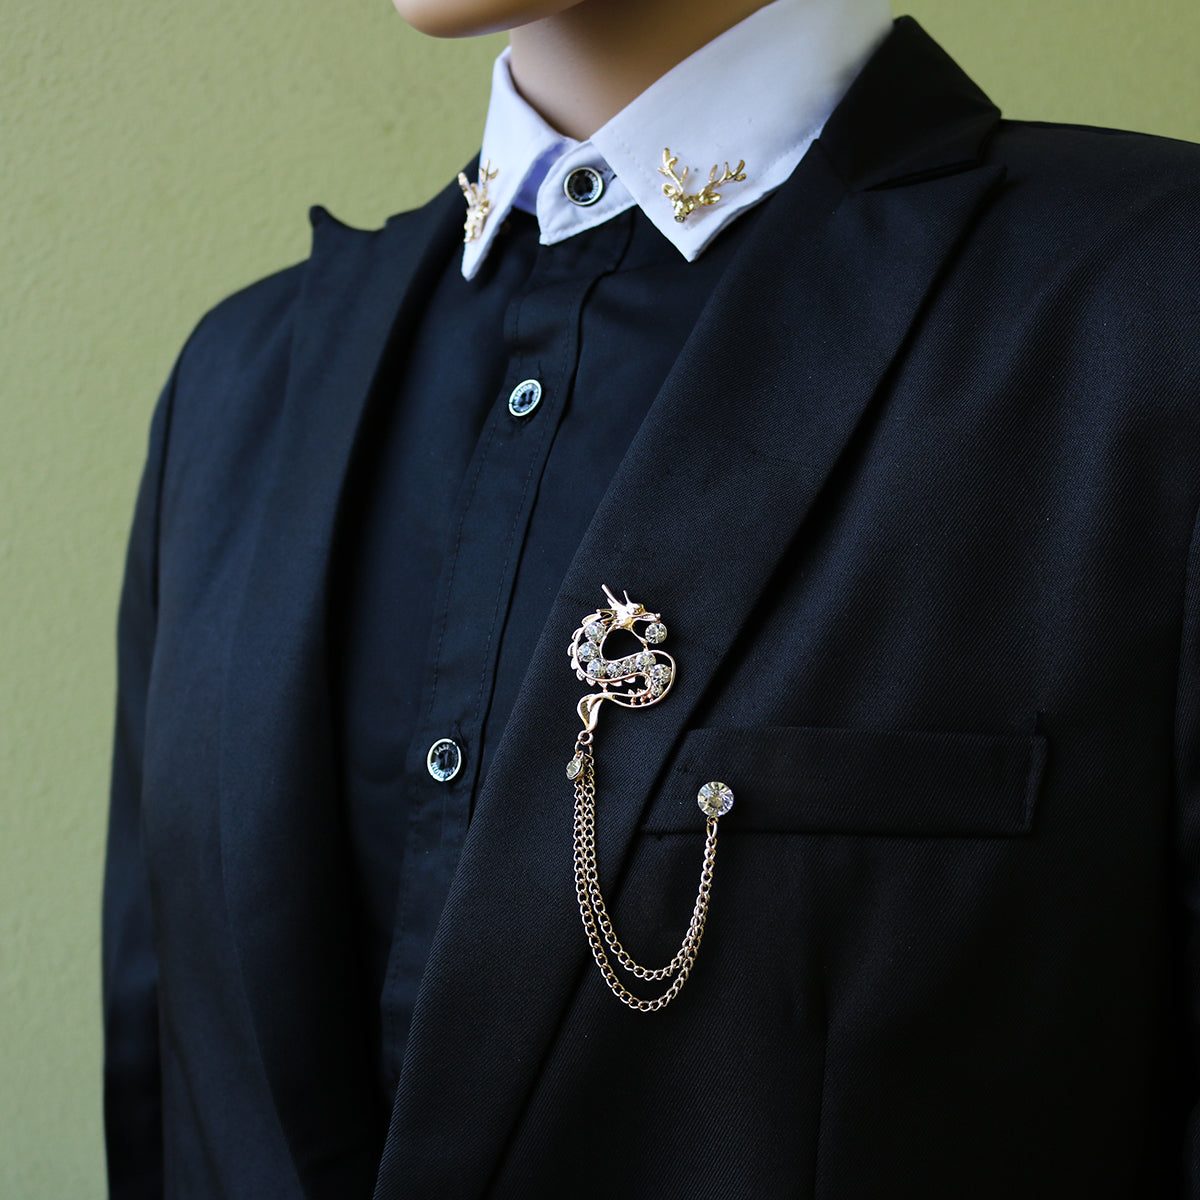 pin to mens youtube suit your on watch brooch lapel a wear how flower